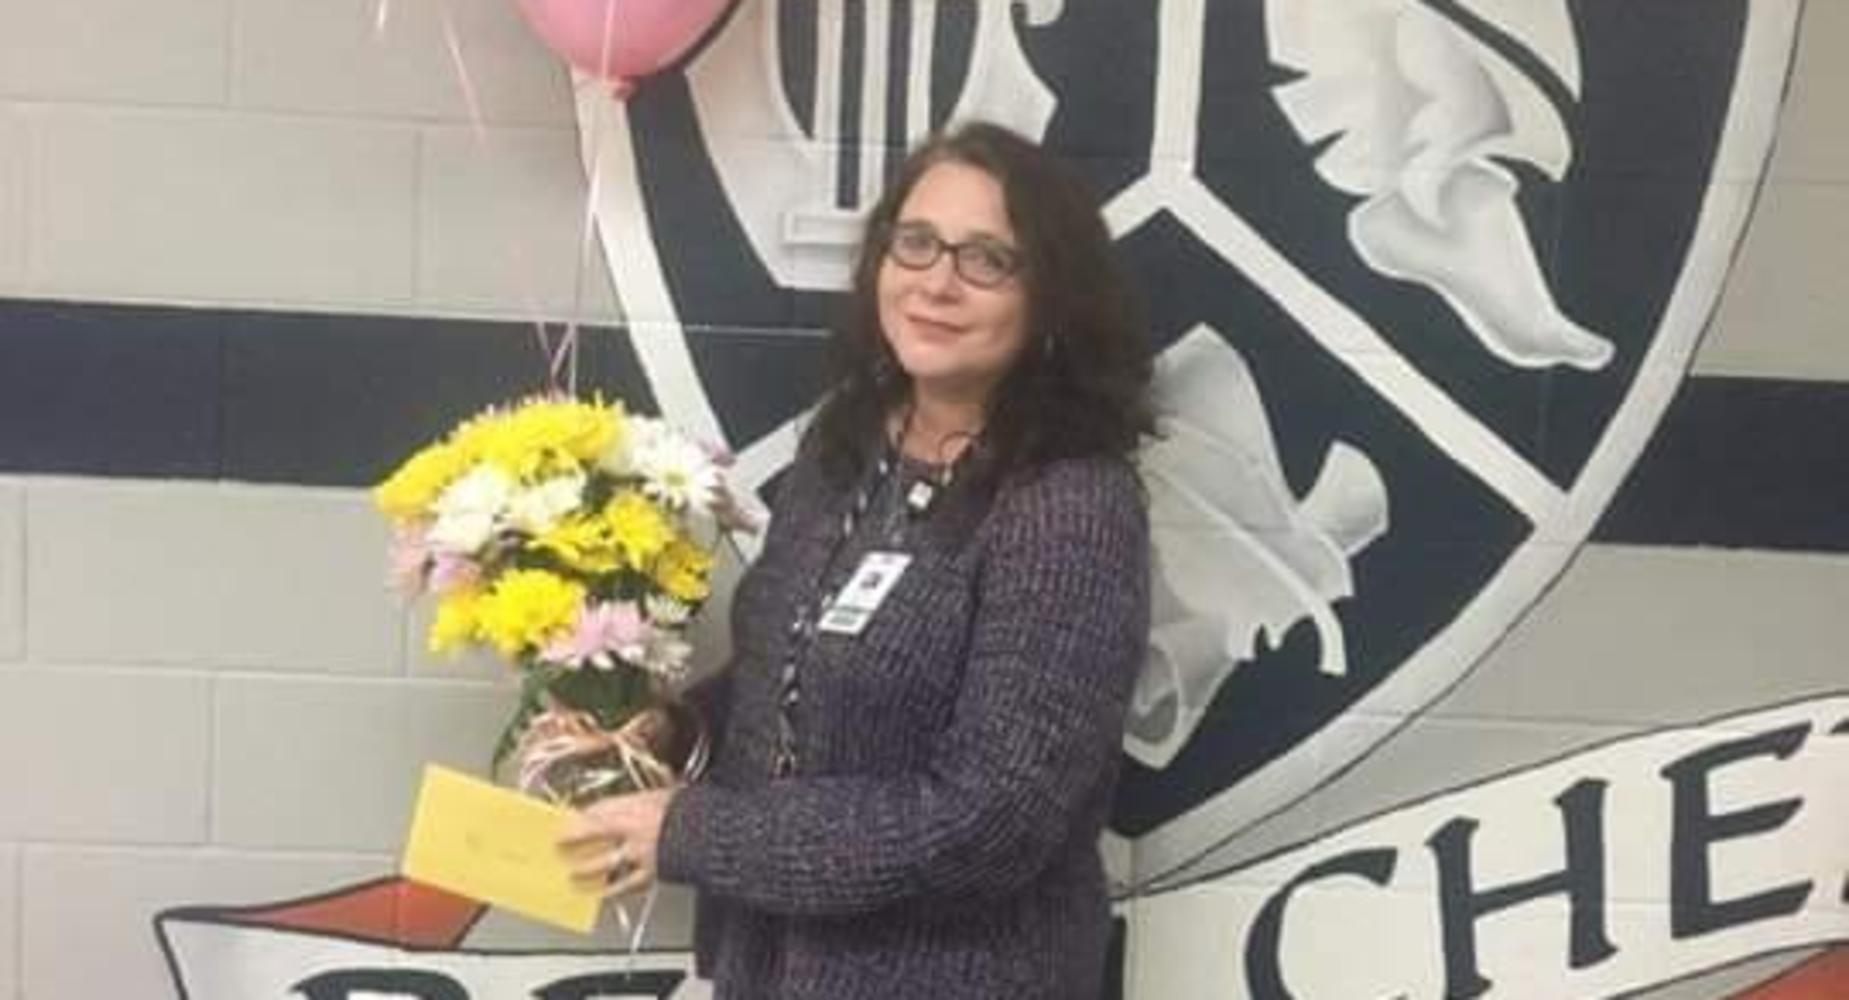 Teacher of the Year - Mrs. C. Croad